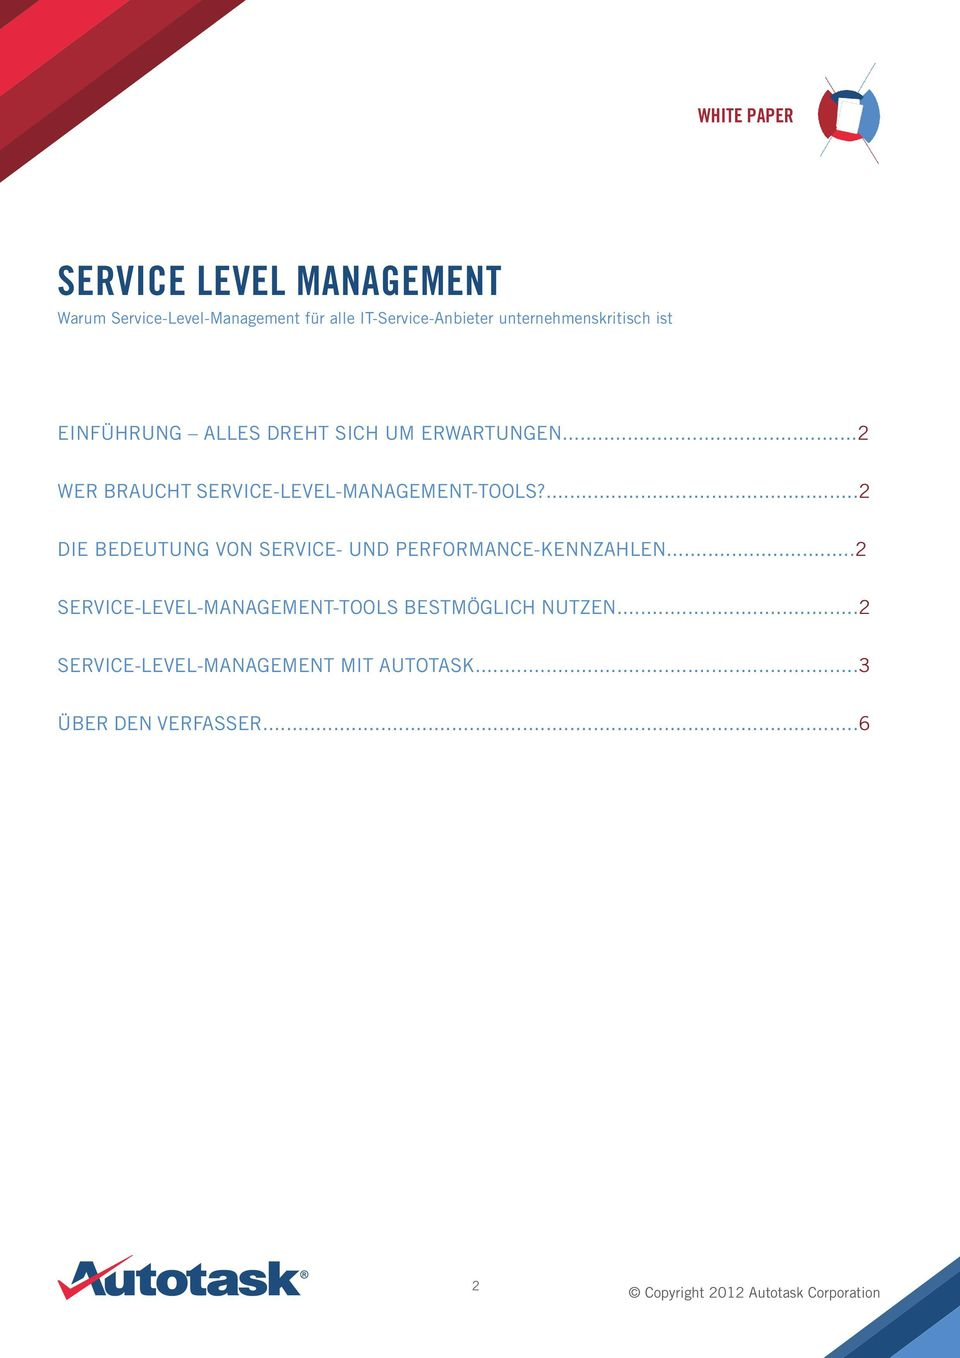 ..2 WER BRAUCHT SERVICE-LEVEL-MANAGEMENT-TOOLS?